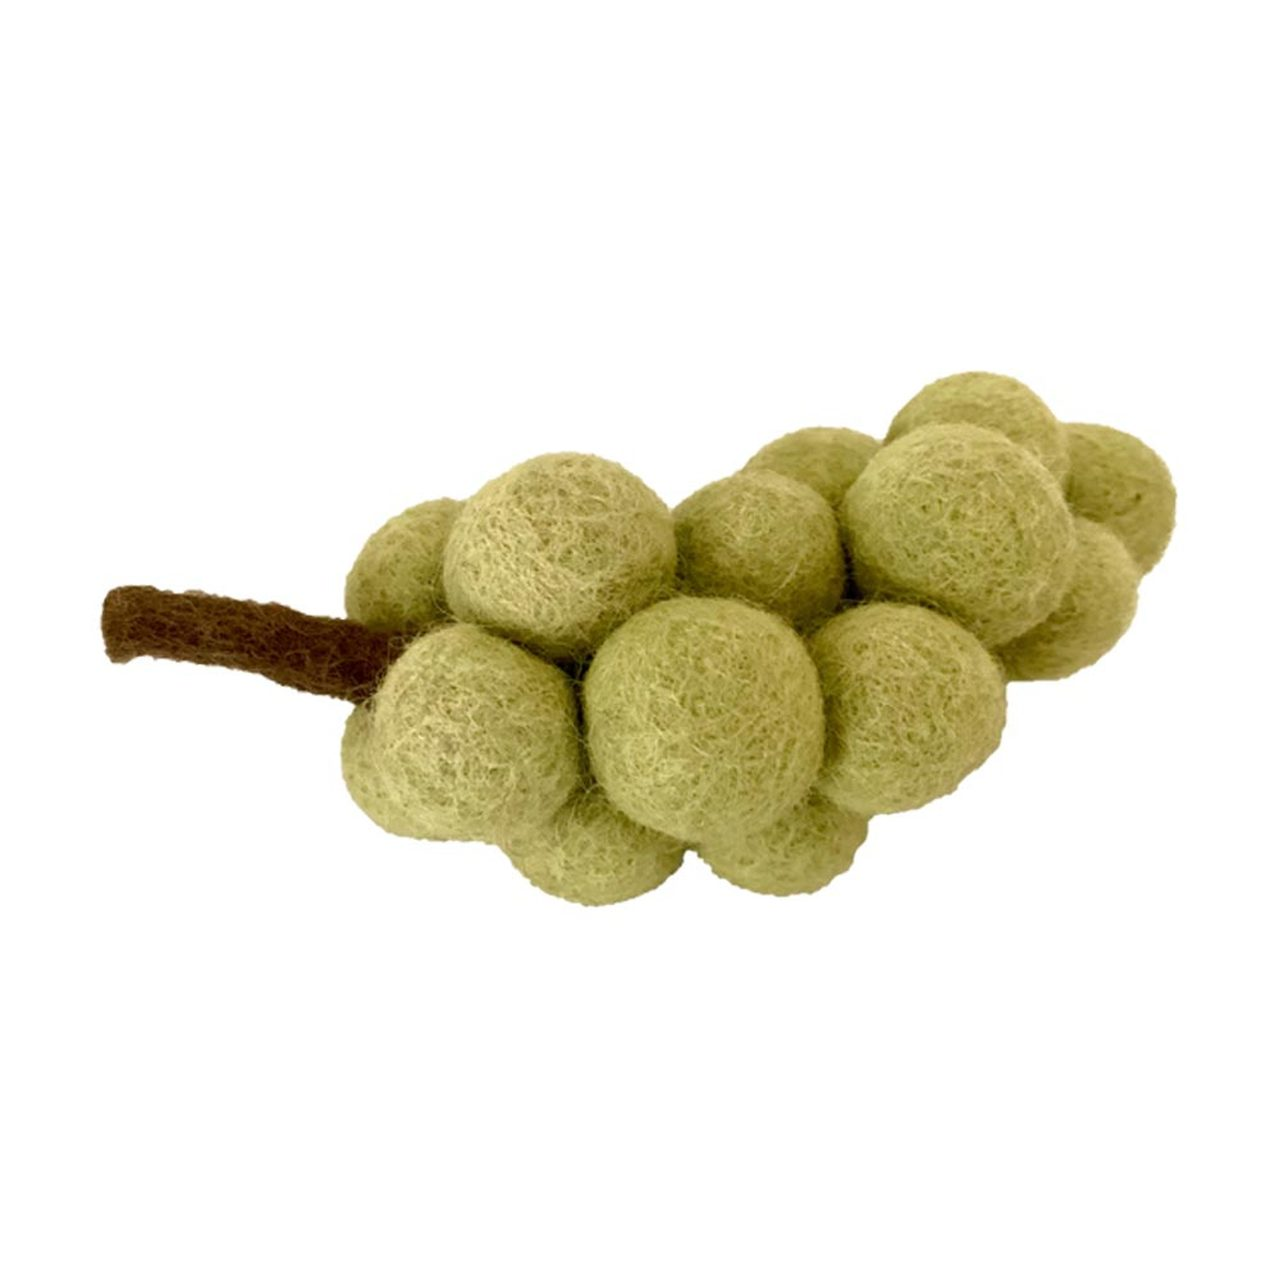 Papoose felt food - green grapes